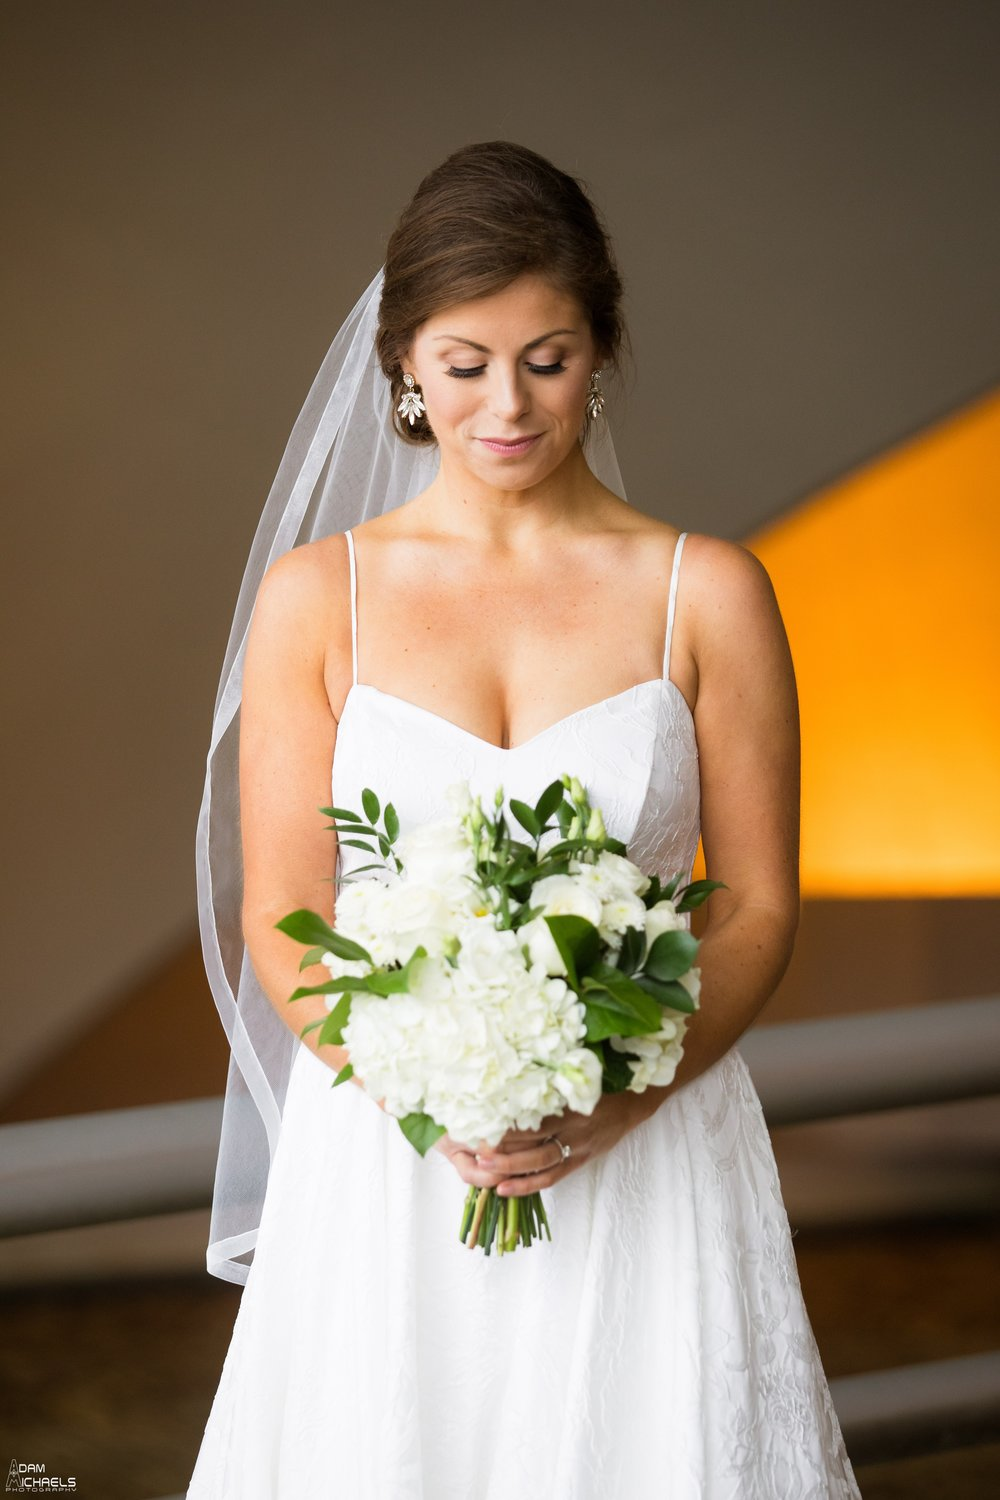 First Look Pittsburgh Point Wedding Pictures_1786.jpg